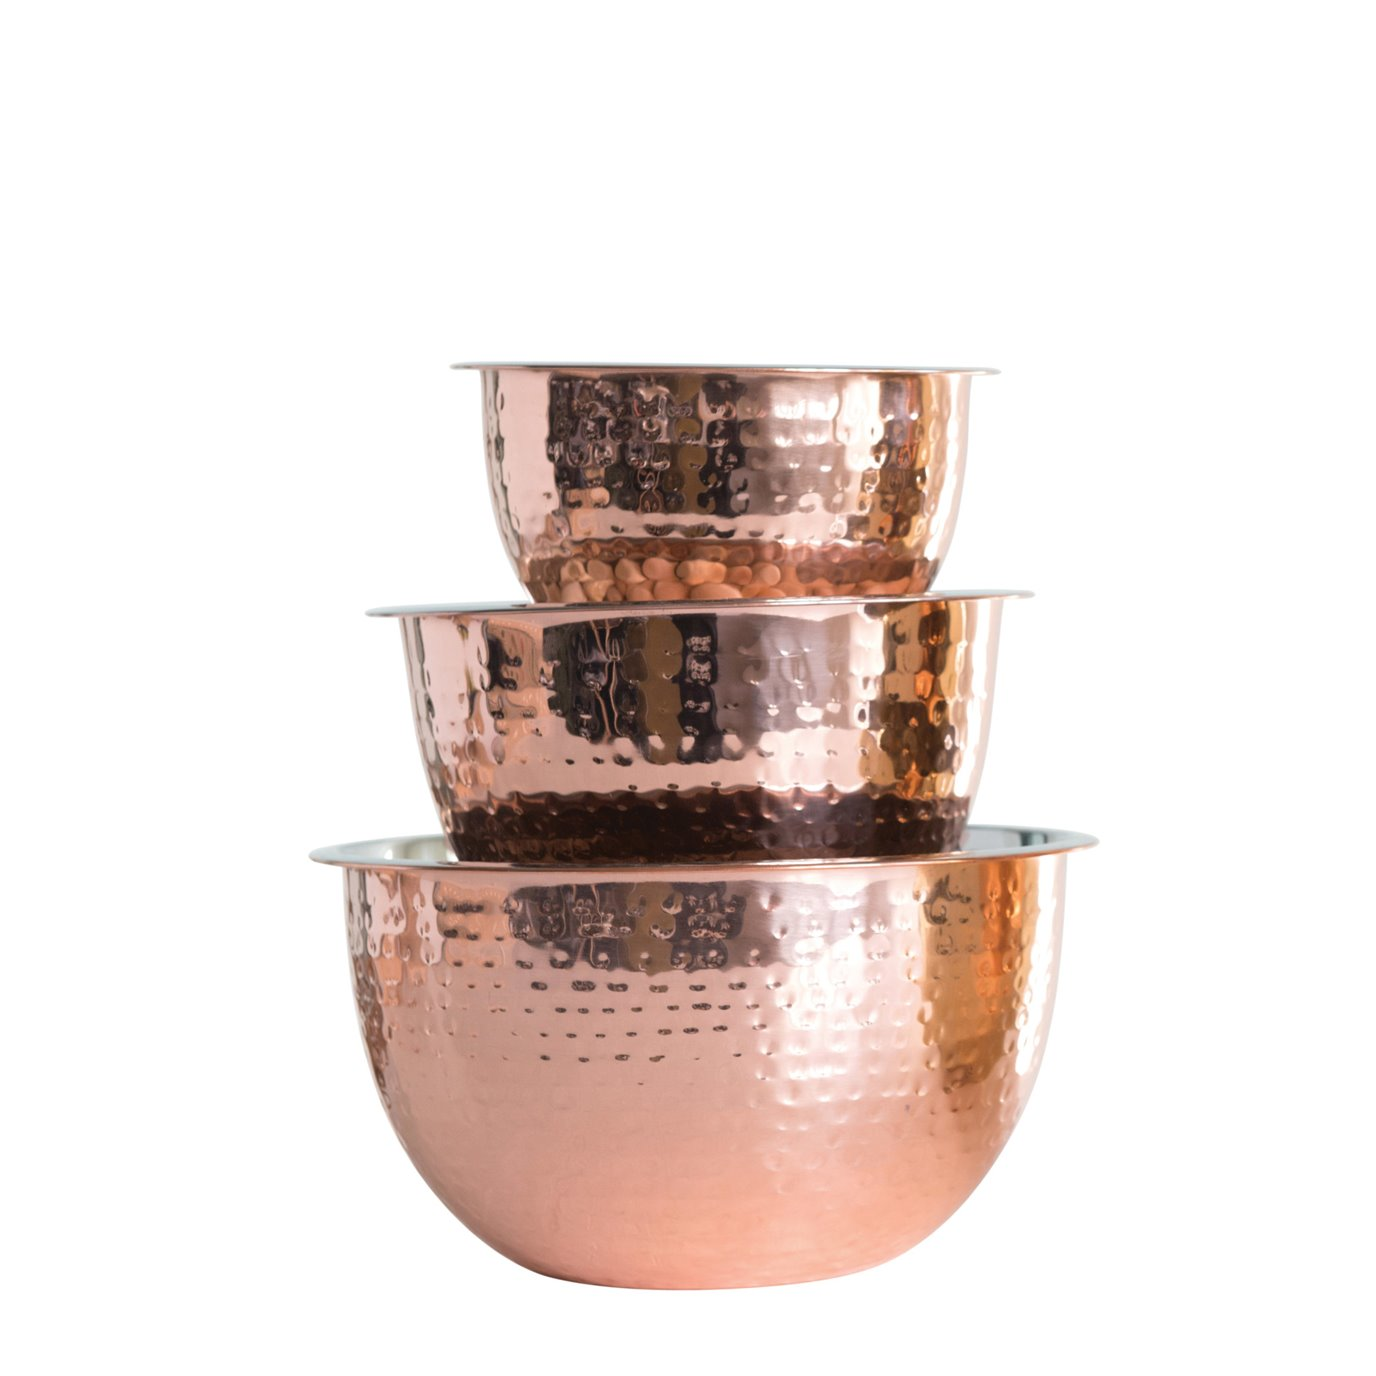 Hammered Stainless Steel Bowls in Copper Finish (Set of 3 Sizes)